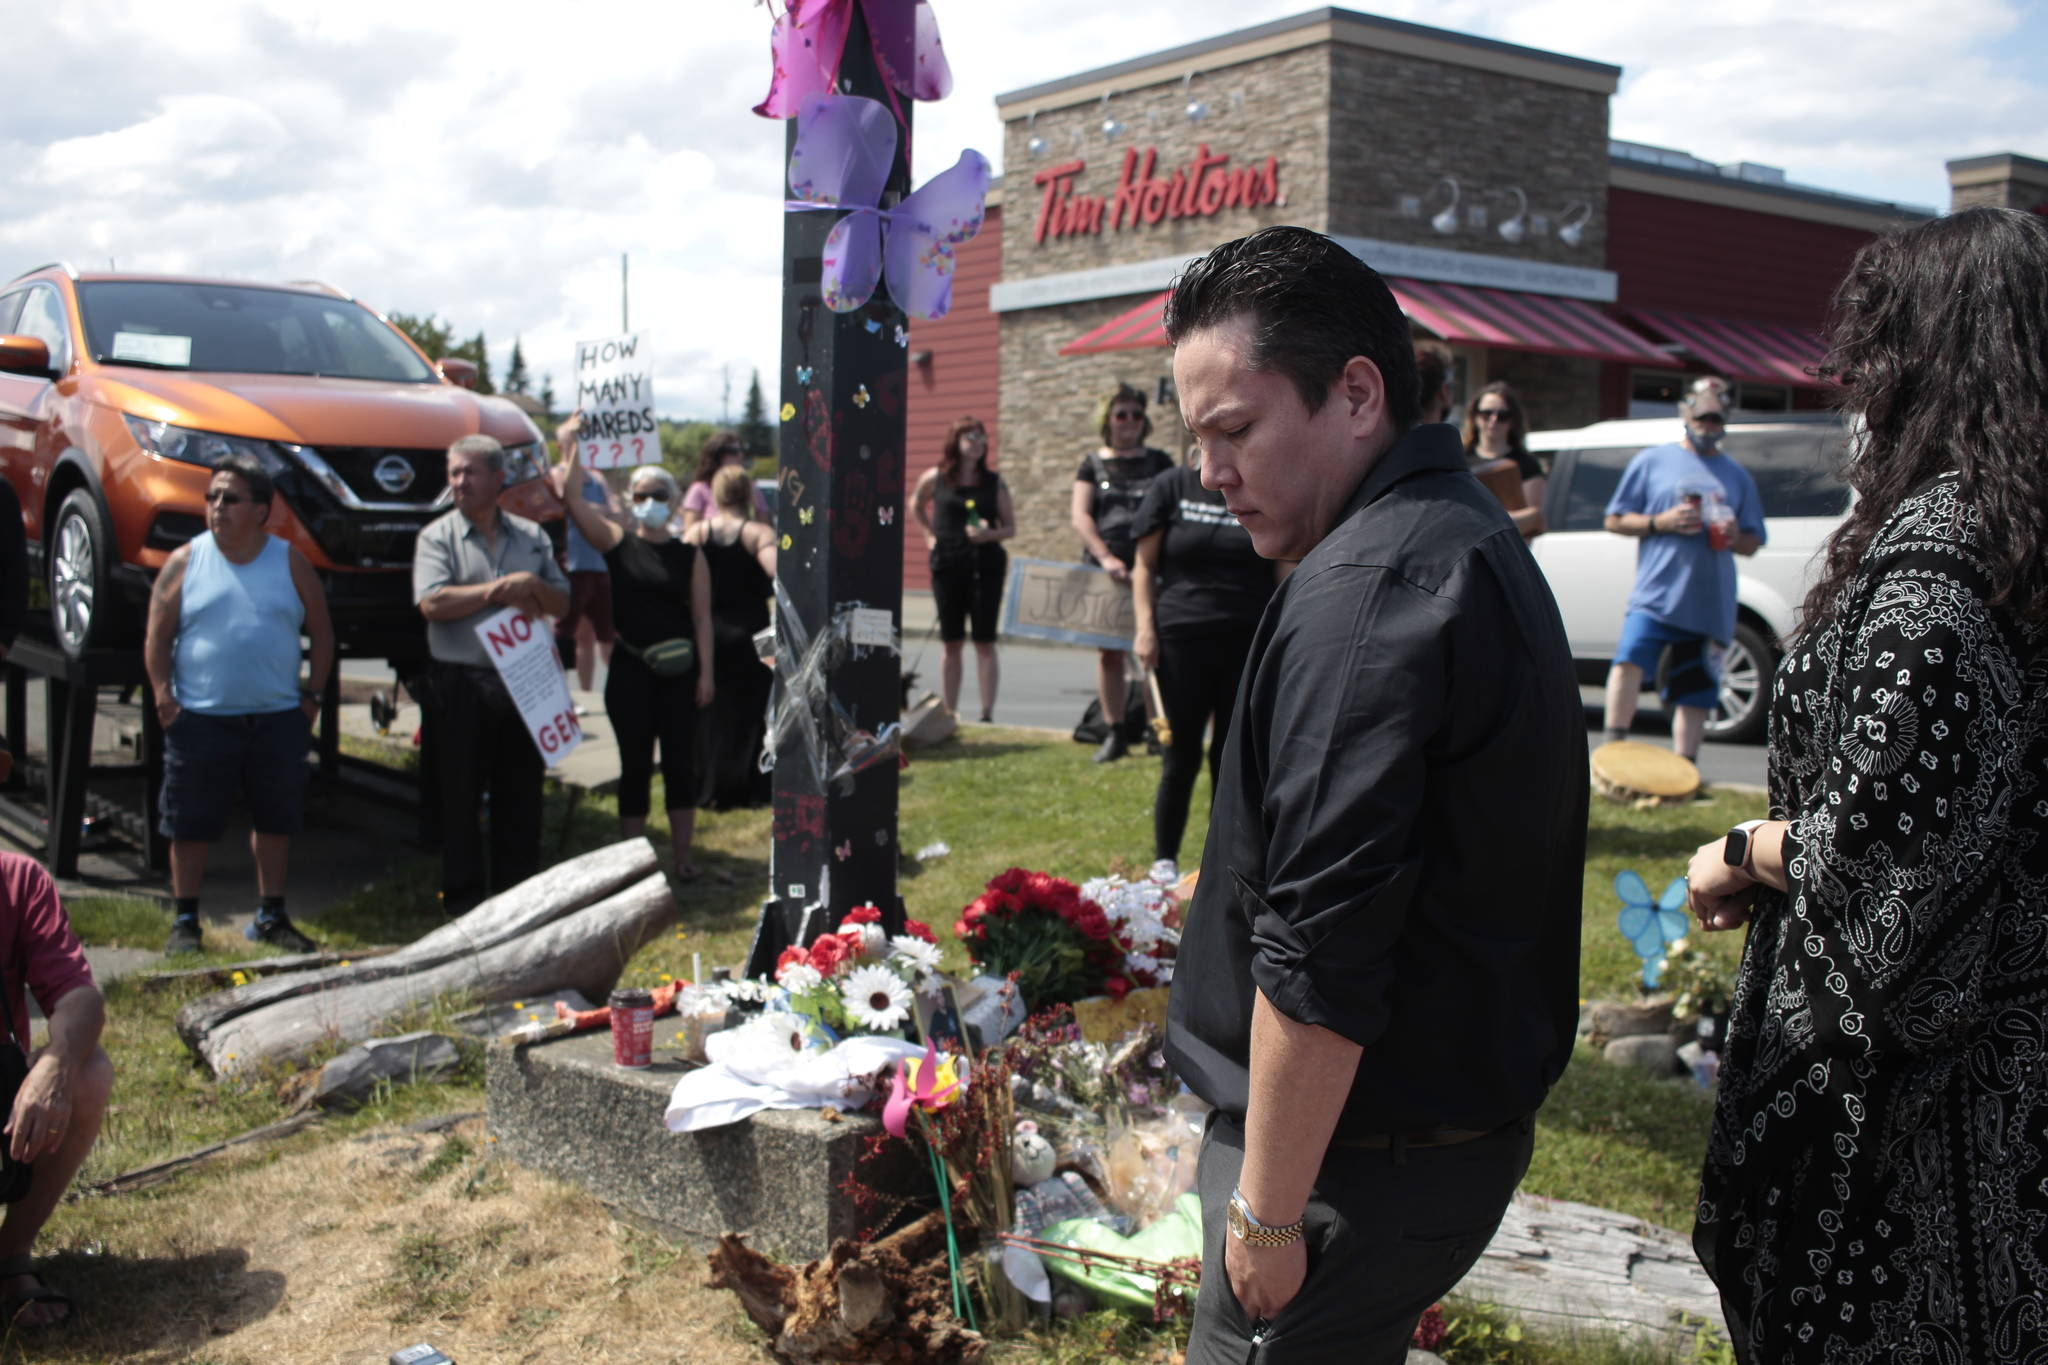 Jared Lowndes' friend Jason Watt makes a statement at Lowndes' memorial. Photo by Marc Kitteringham / Campbell River Mirror